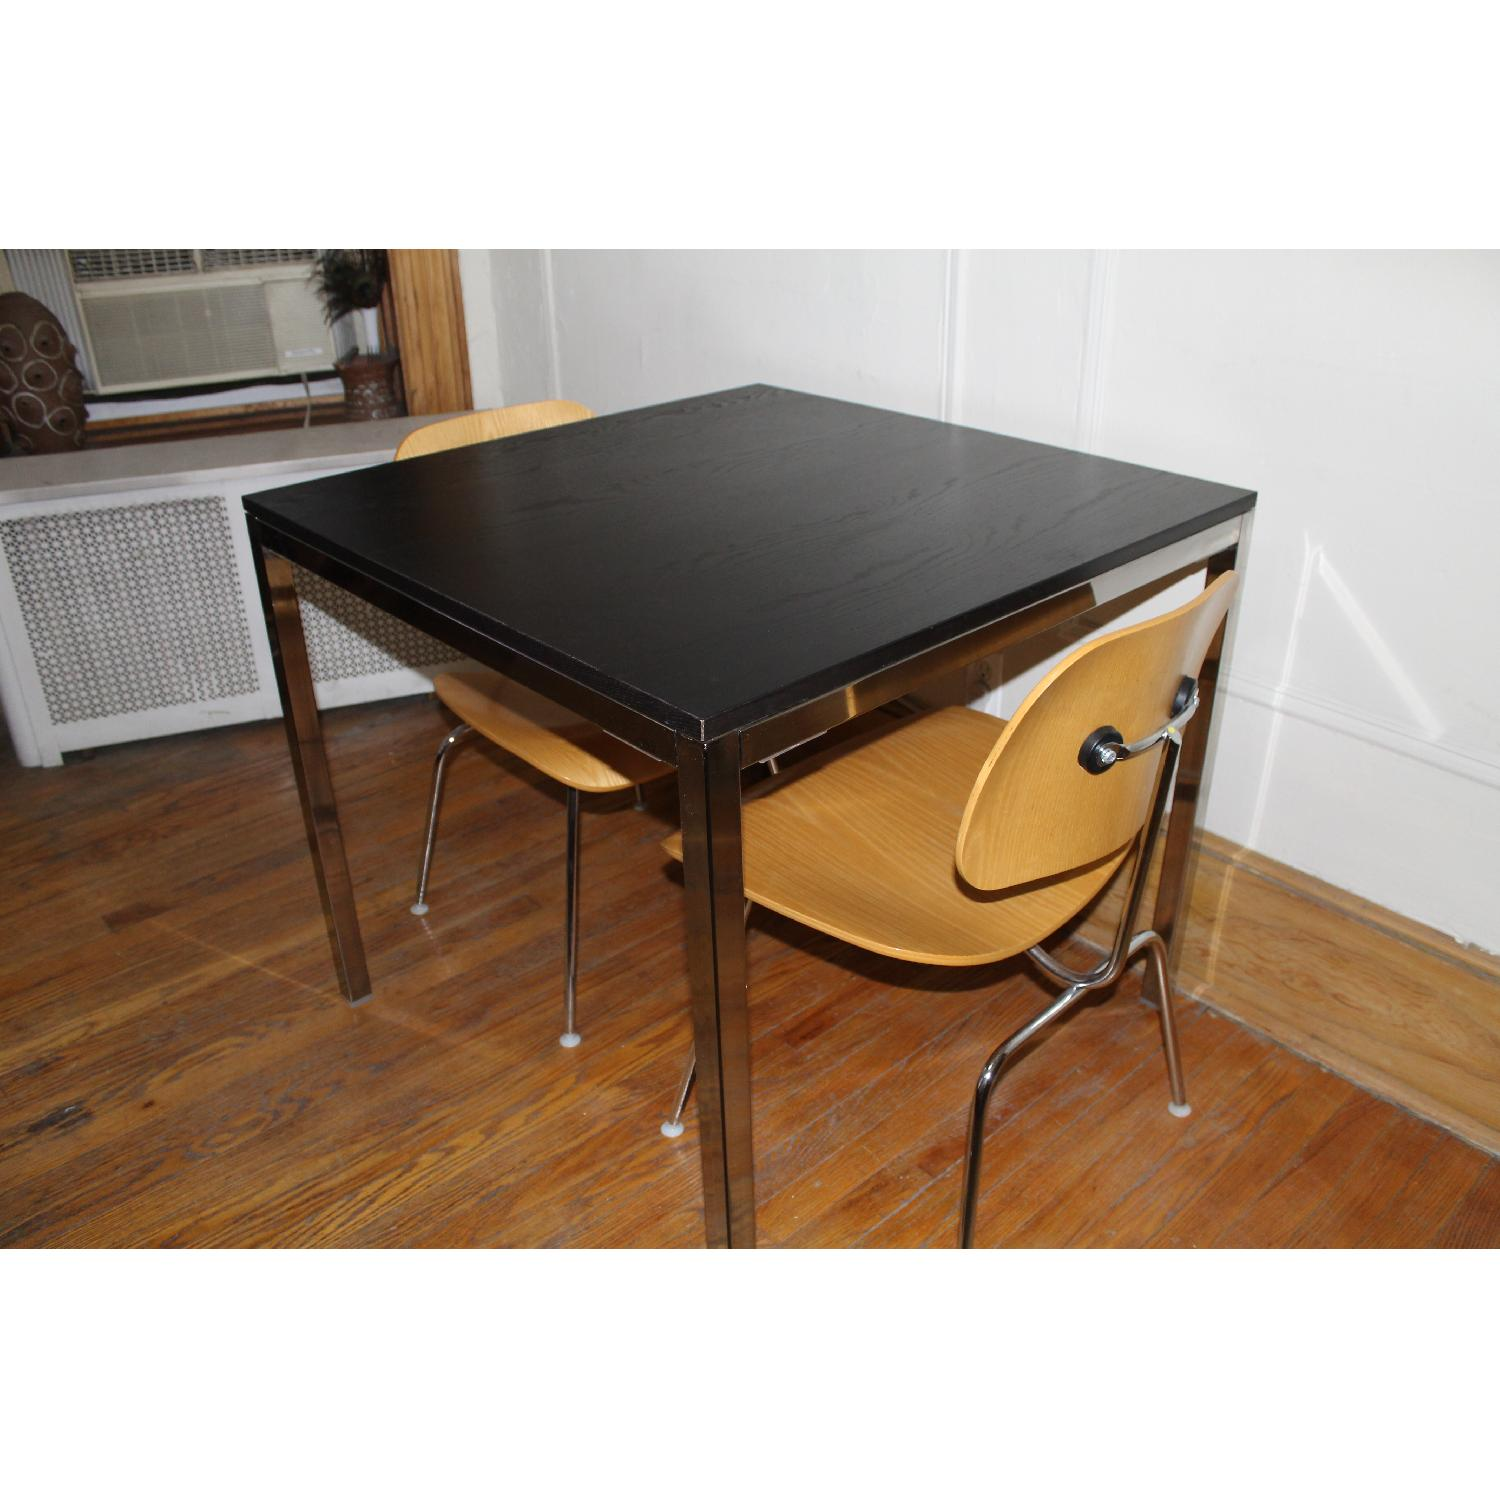 Ikea Torsby Dining Table - image-2